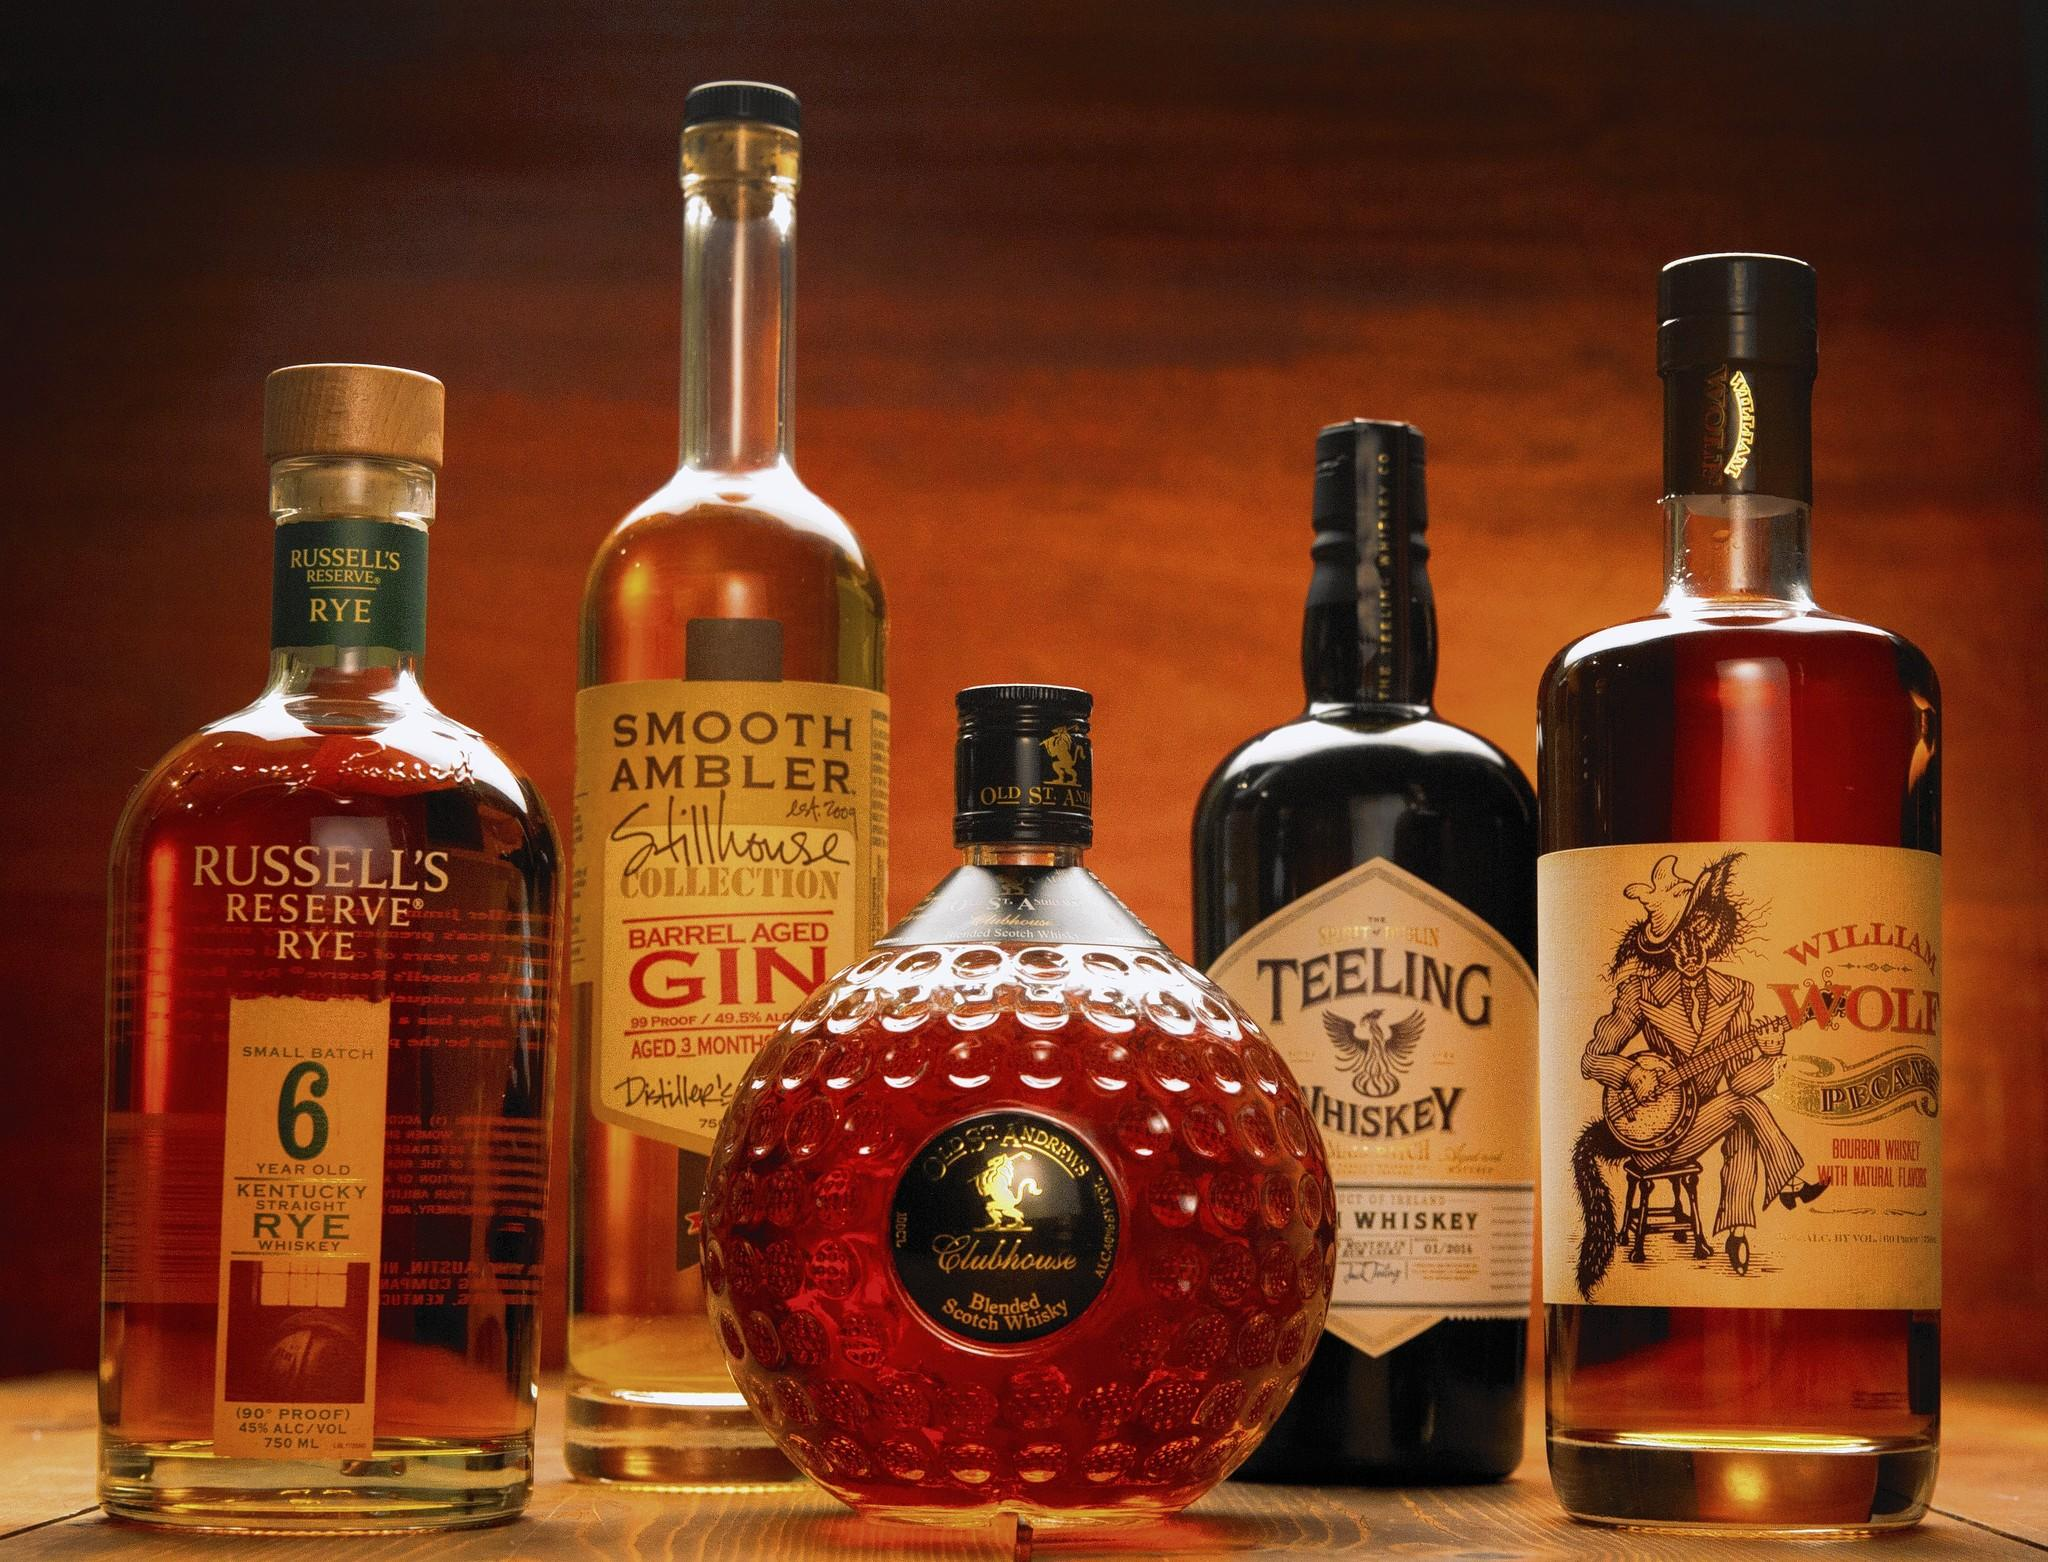 Depending on your dad's tastes, one of these spirits will be a great Father's Day gift.